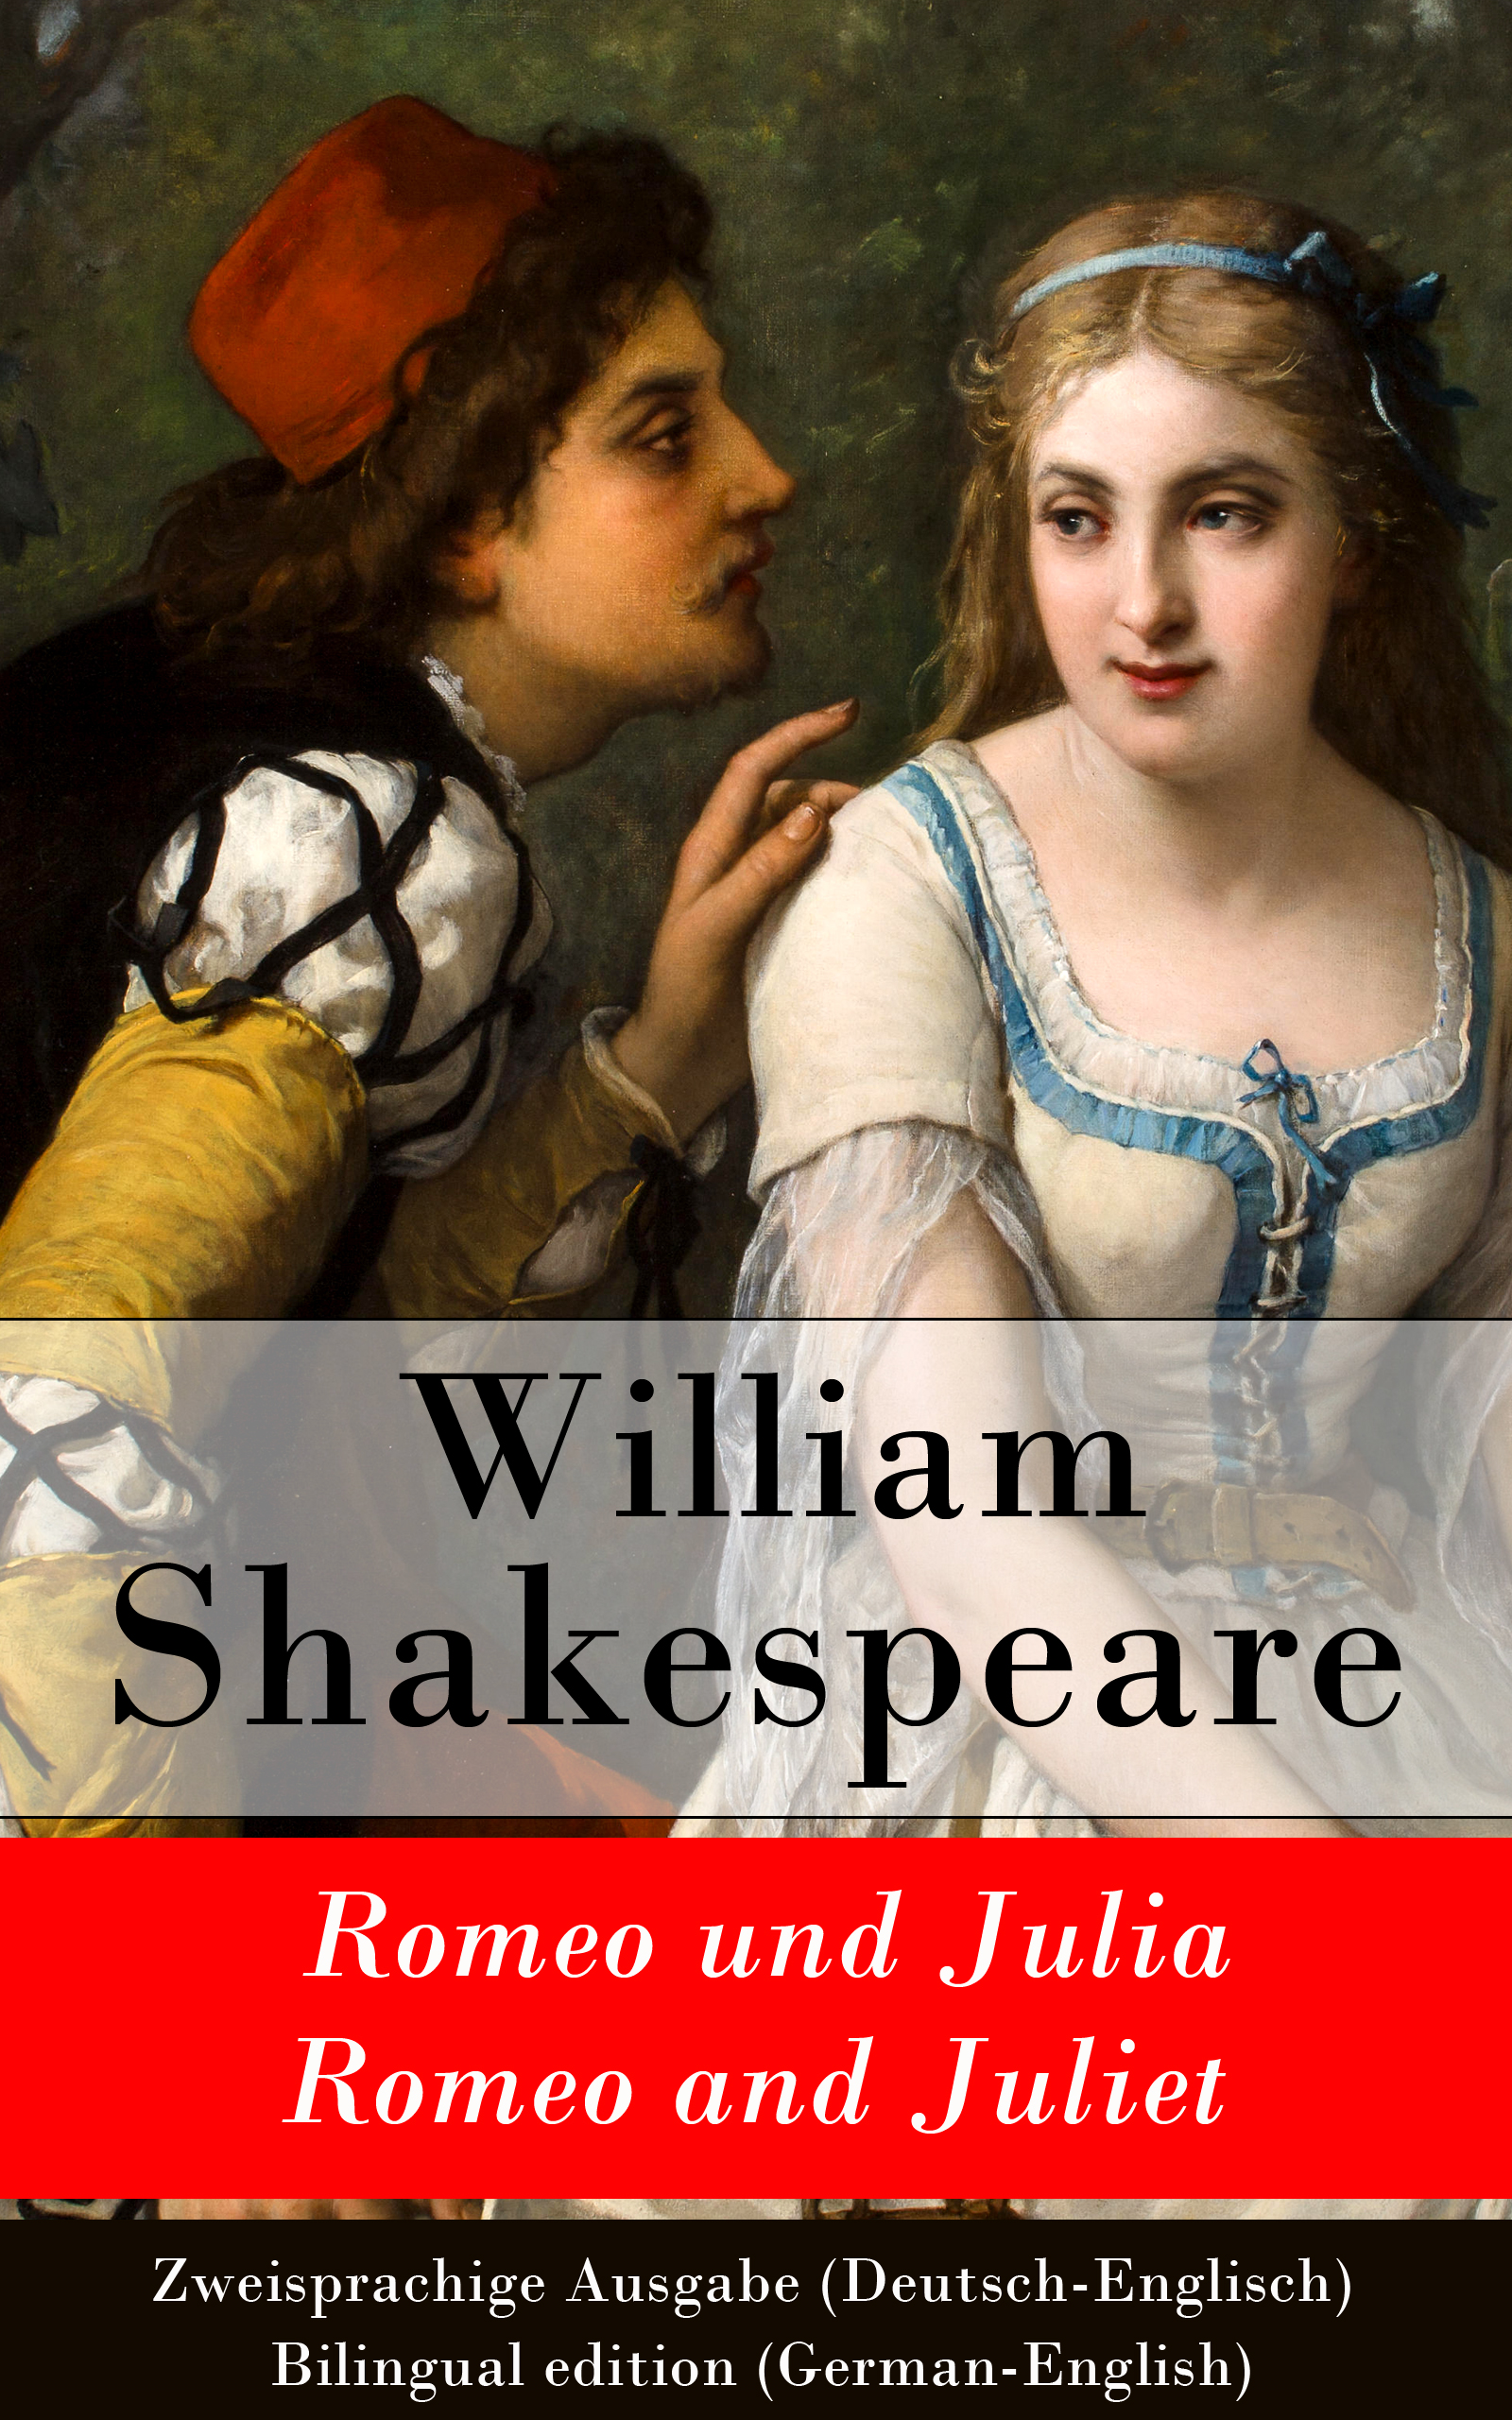 romeo und julia romeo and juliet zweisprachige ausgabe deutsch englisch bilingual edition german english